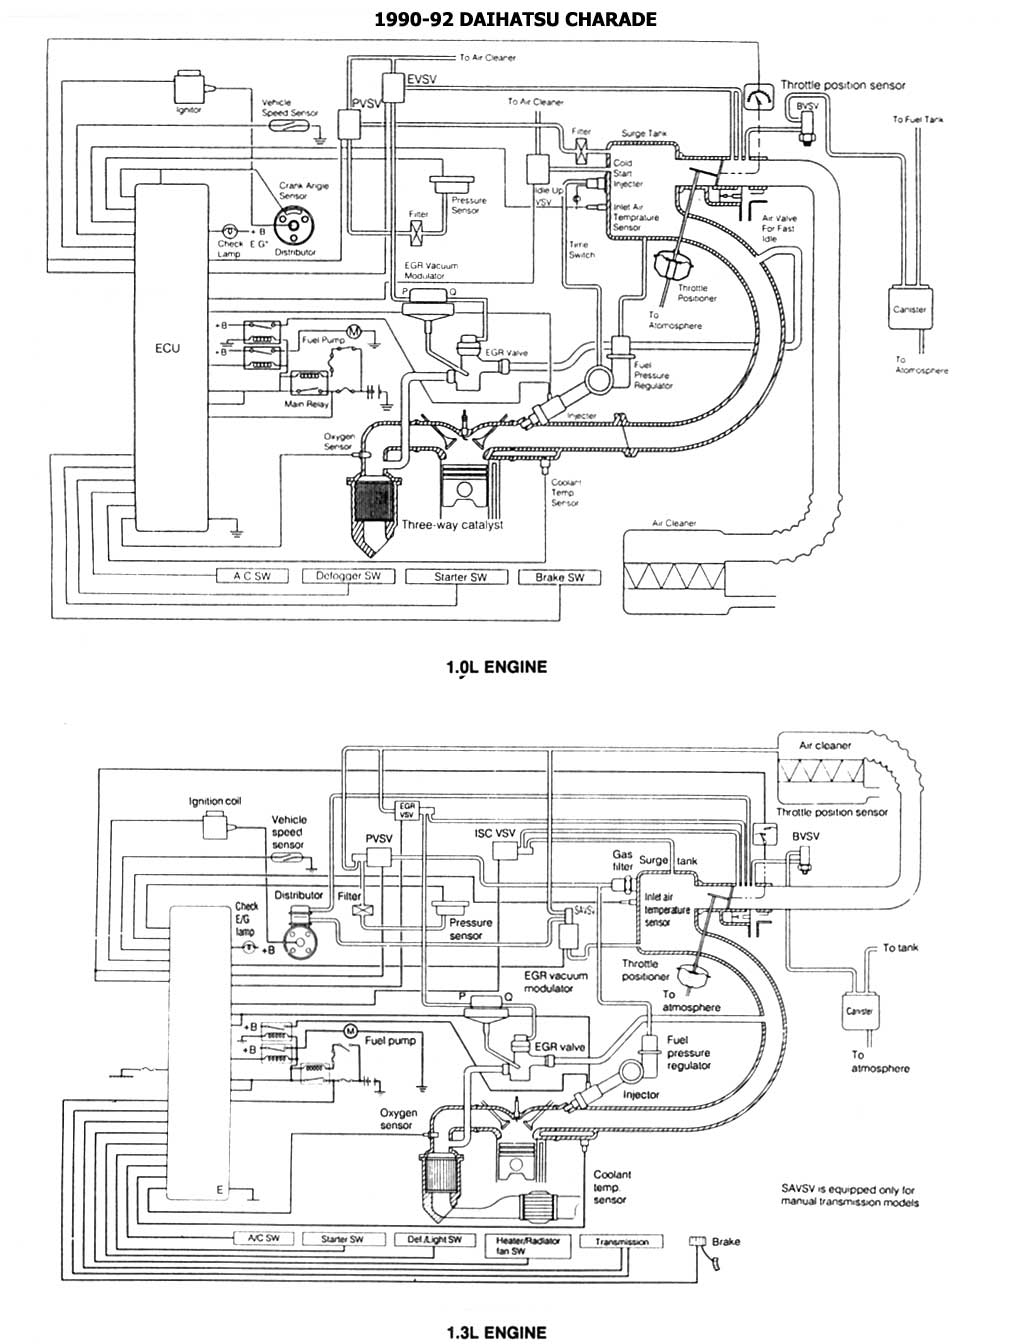 Kia Pride Wiring Diagram Pdf : Kia pride engine diagram introduction to electrical wiring